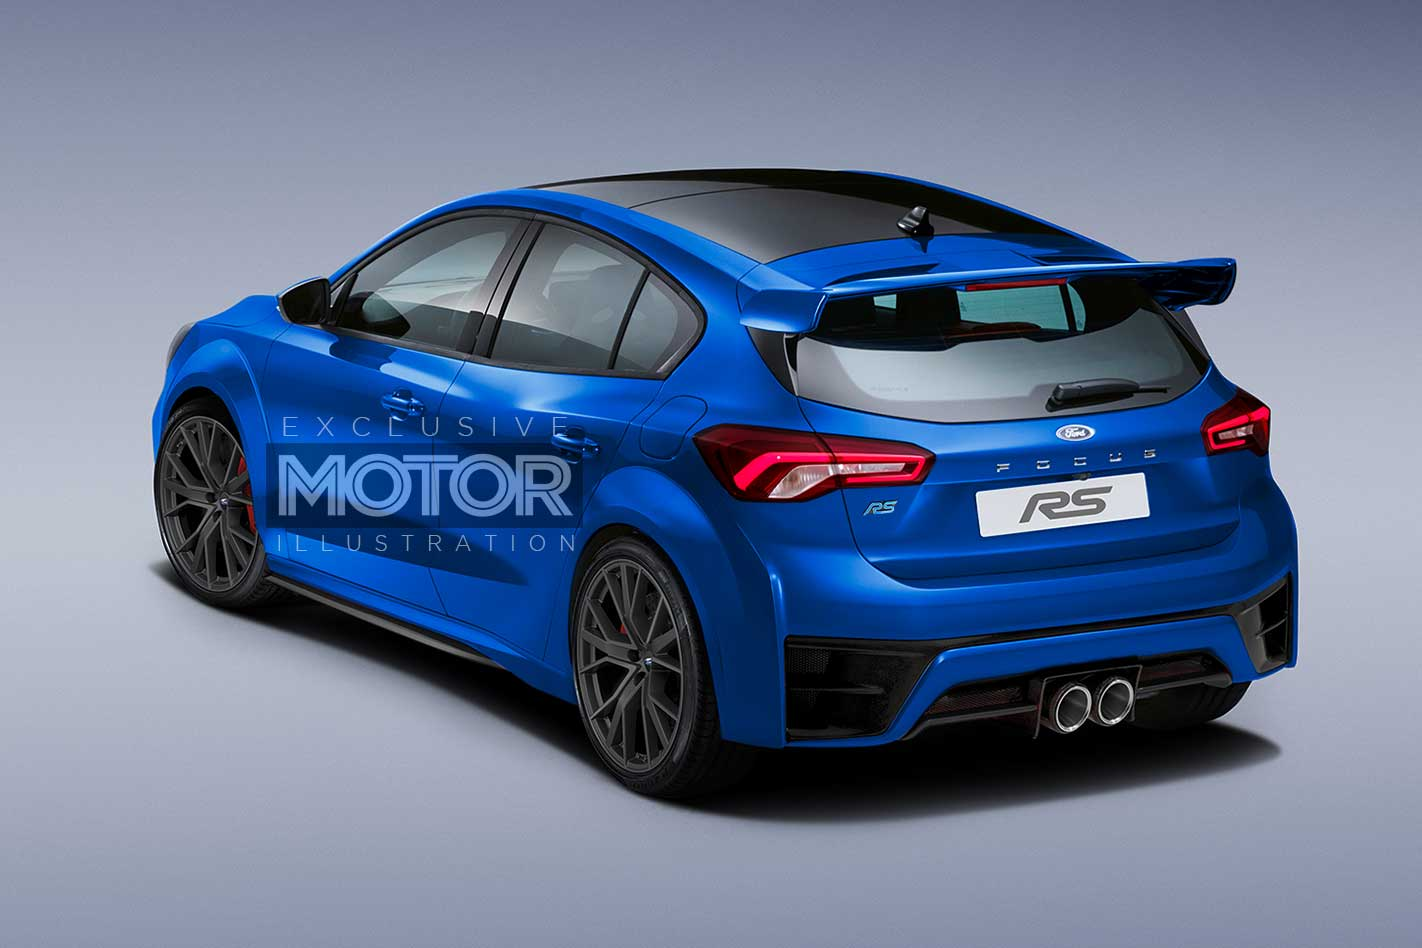 55 The Best 2020 Ford Fiesta St Rs Specs